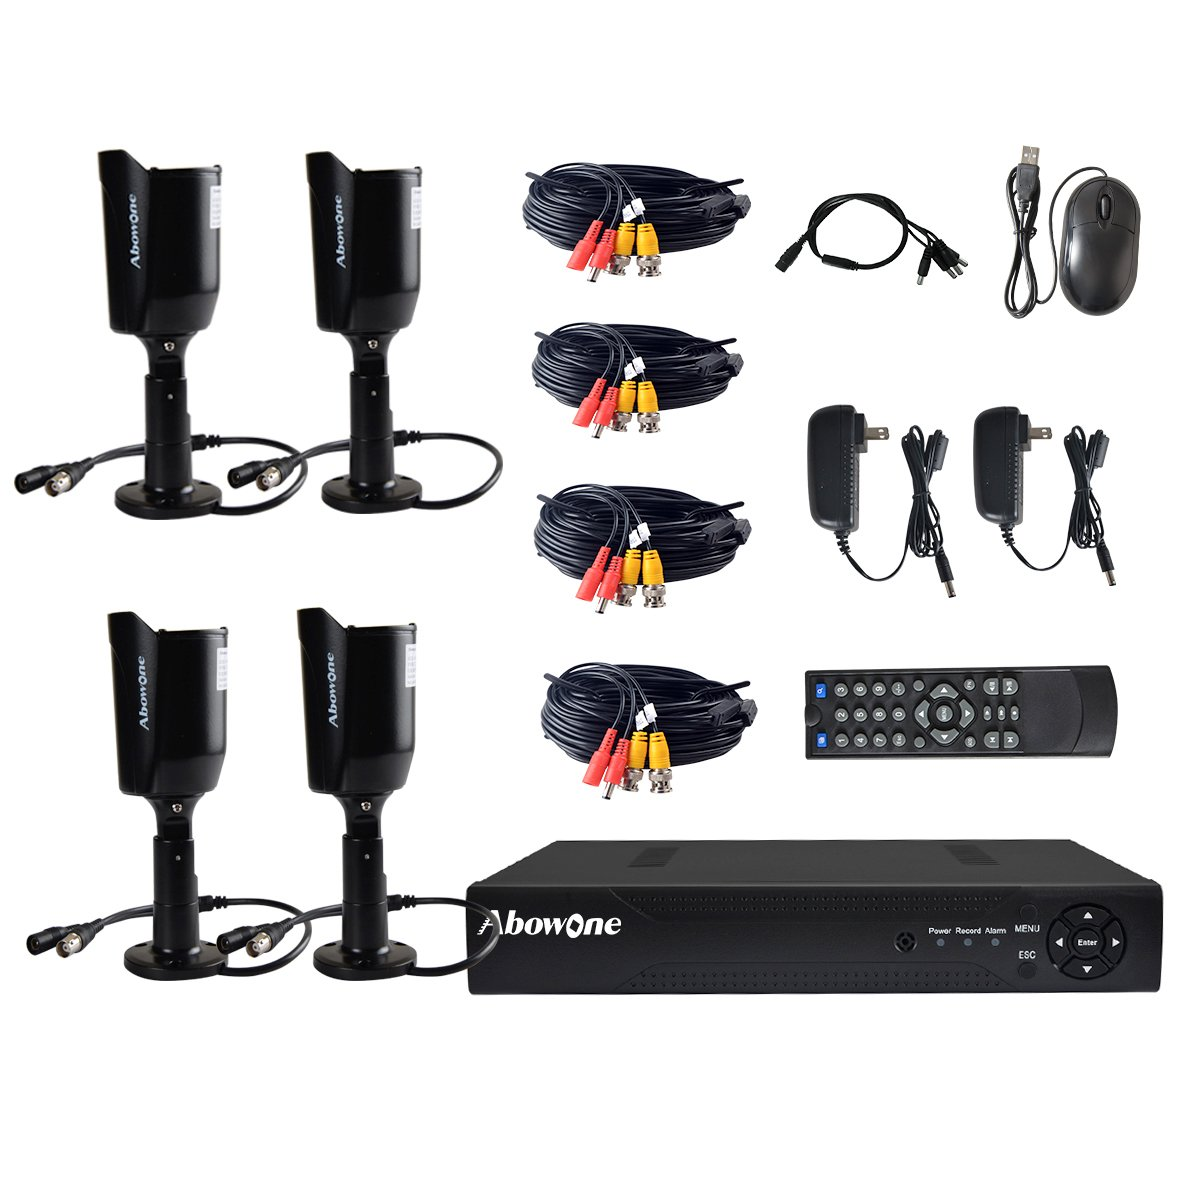 Security Camera System,Abowone 8CH 1080N CCTV DVR Recorder And 4 x 720P(1280TV line)Outdoor Video Surveillance Cameras /65ft Night Vision